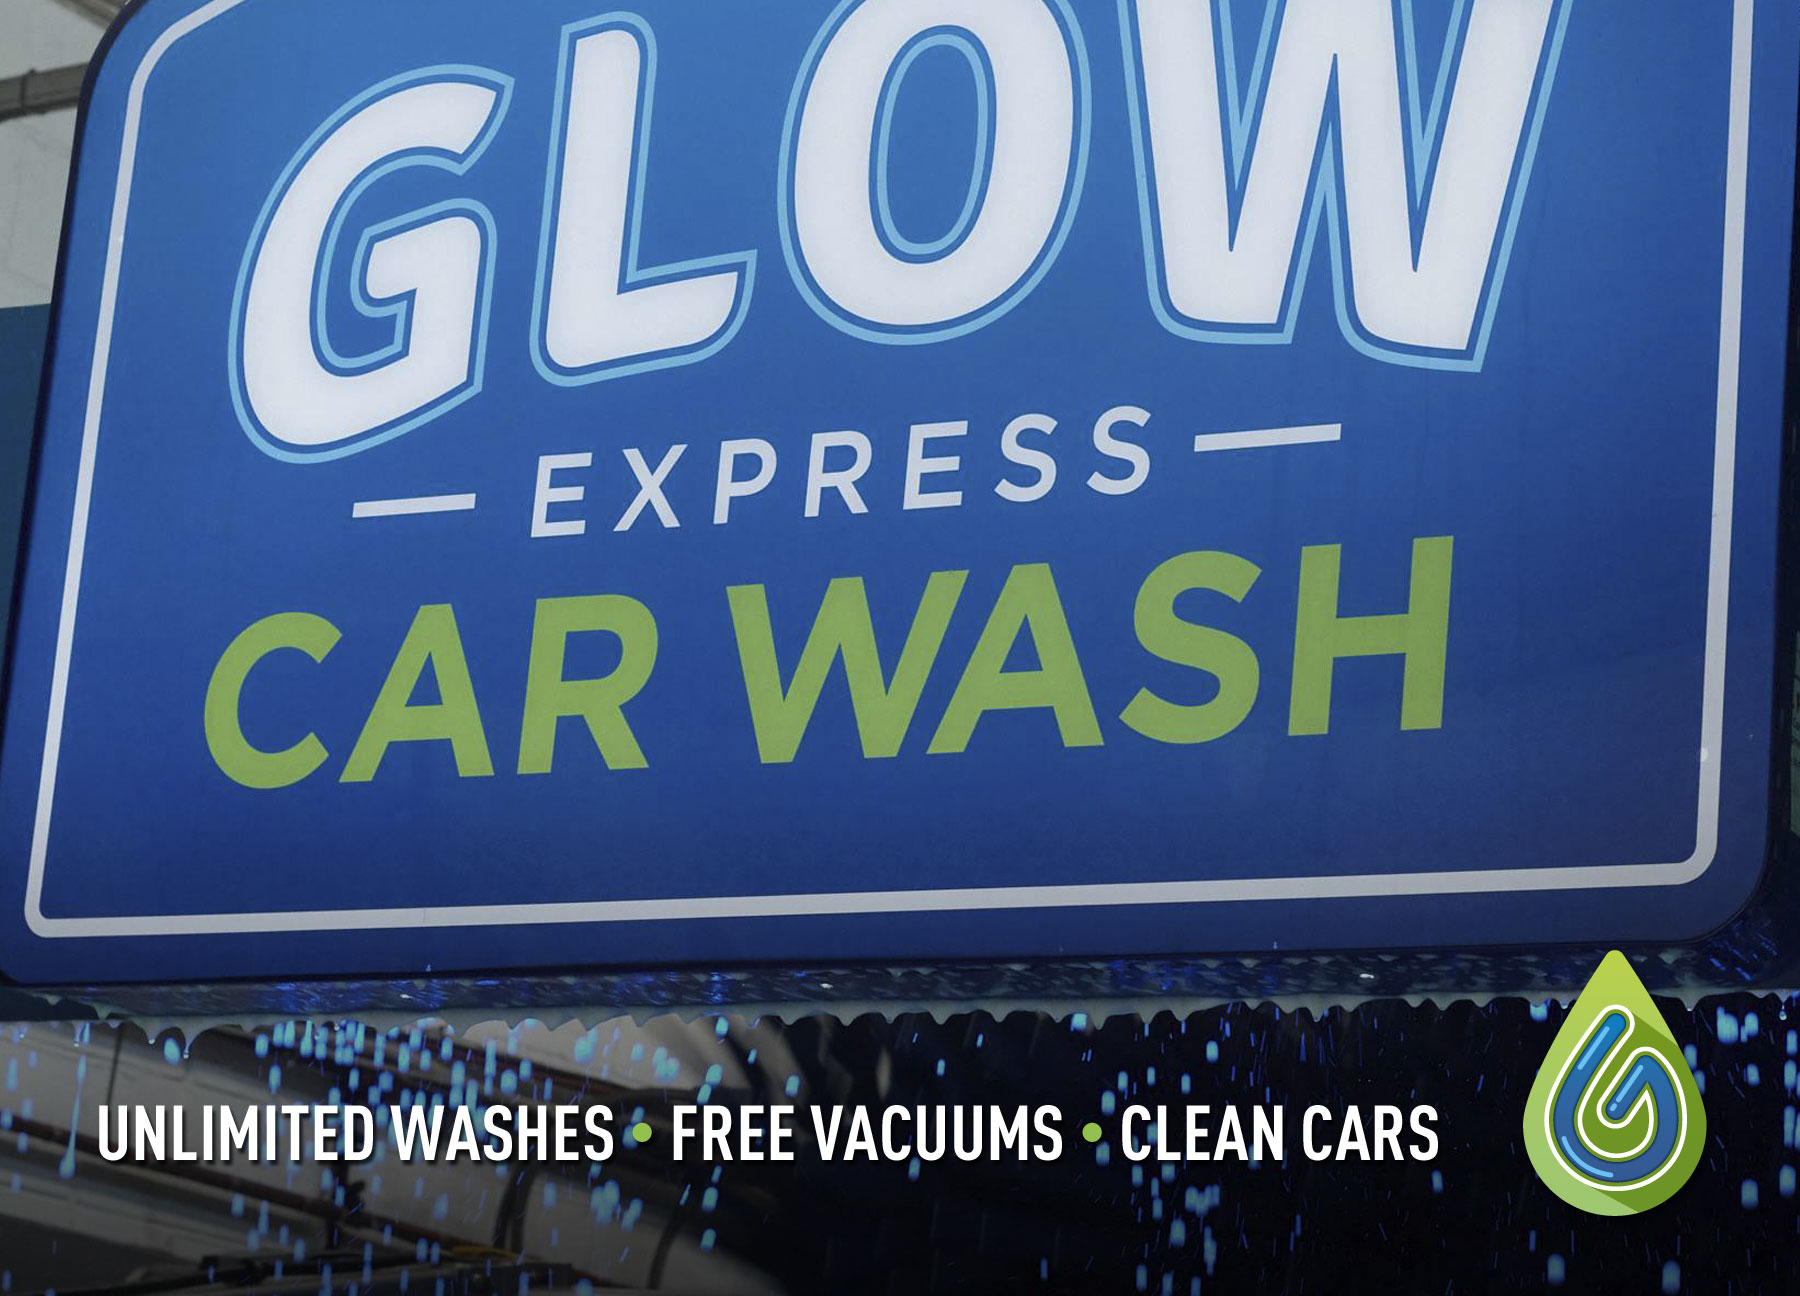 Unlimited Washes. Free Vacuums. Clean cars.